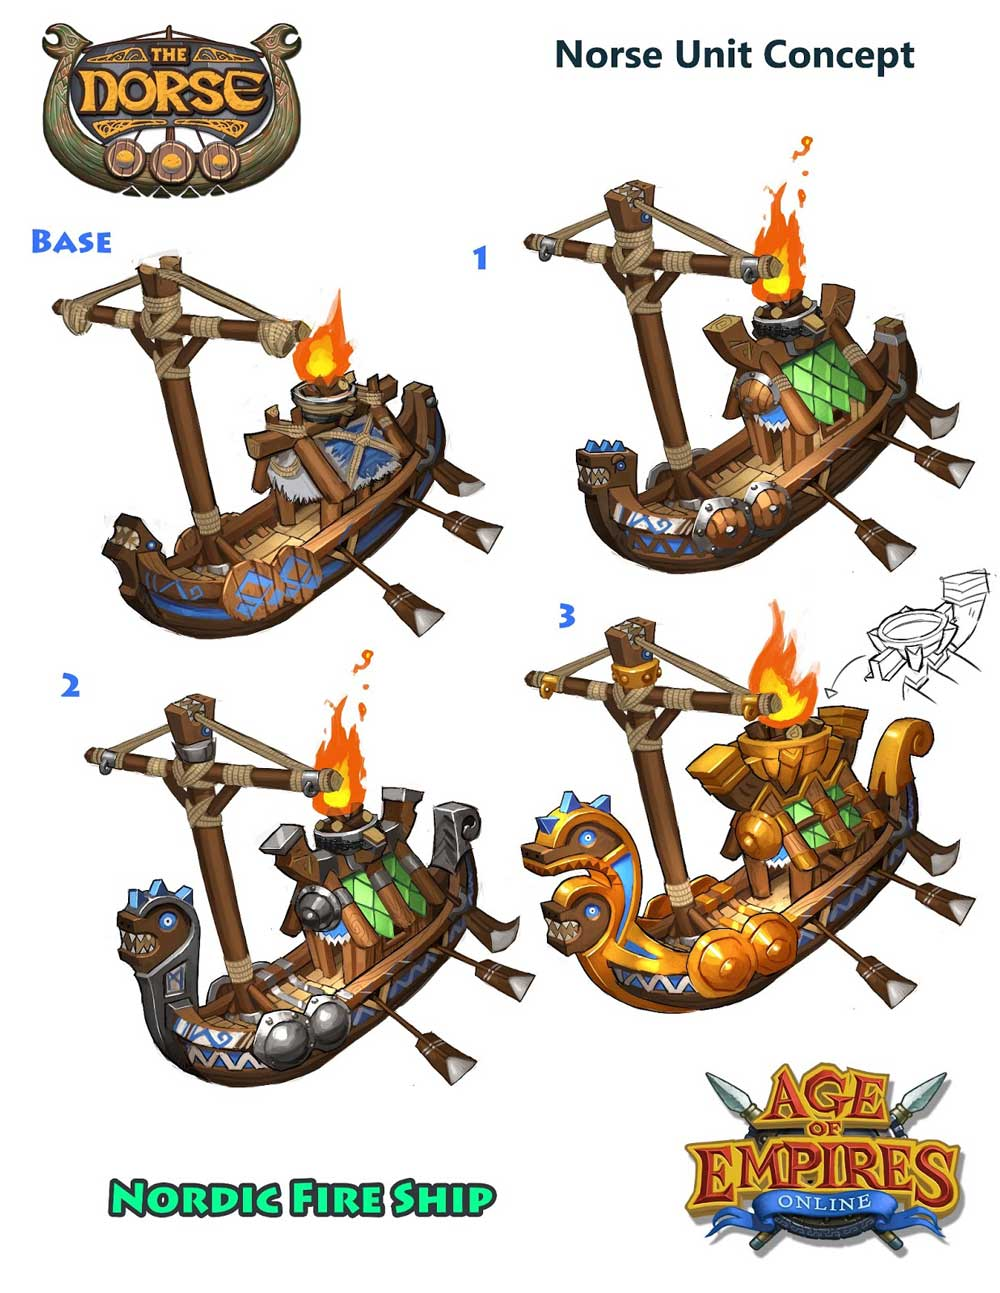 Age of Empires Online ship Concept Art